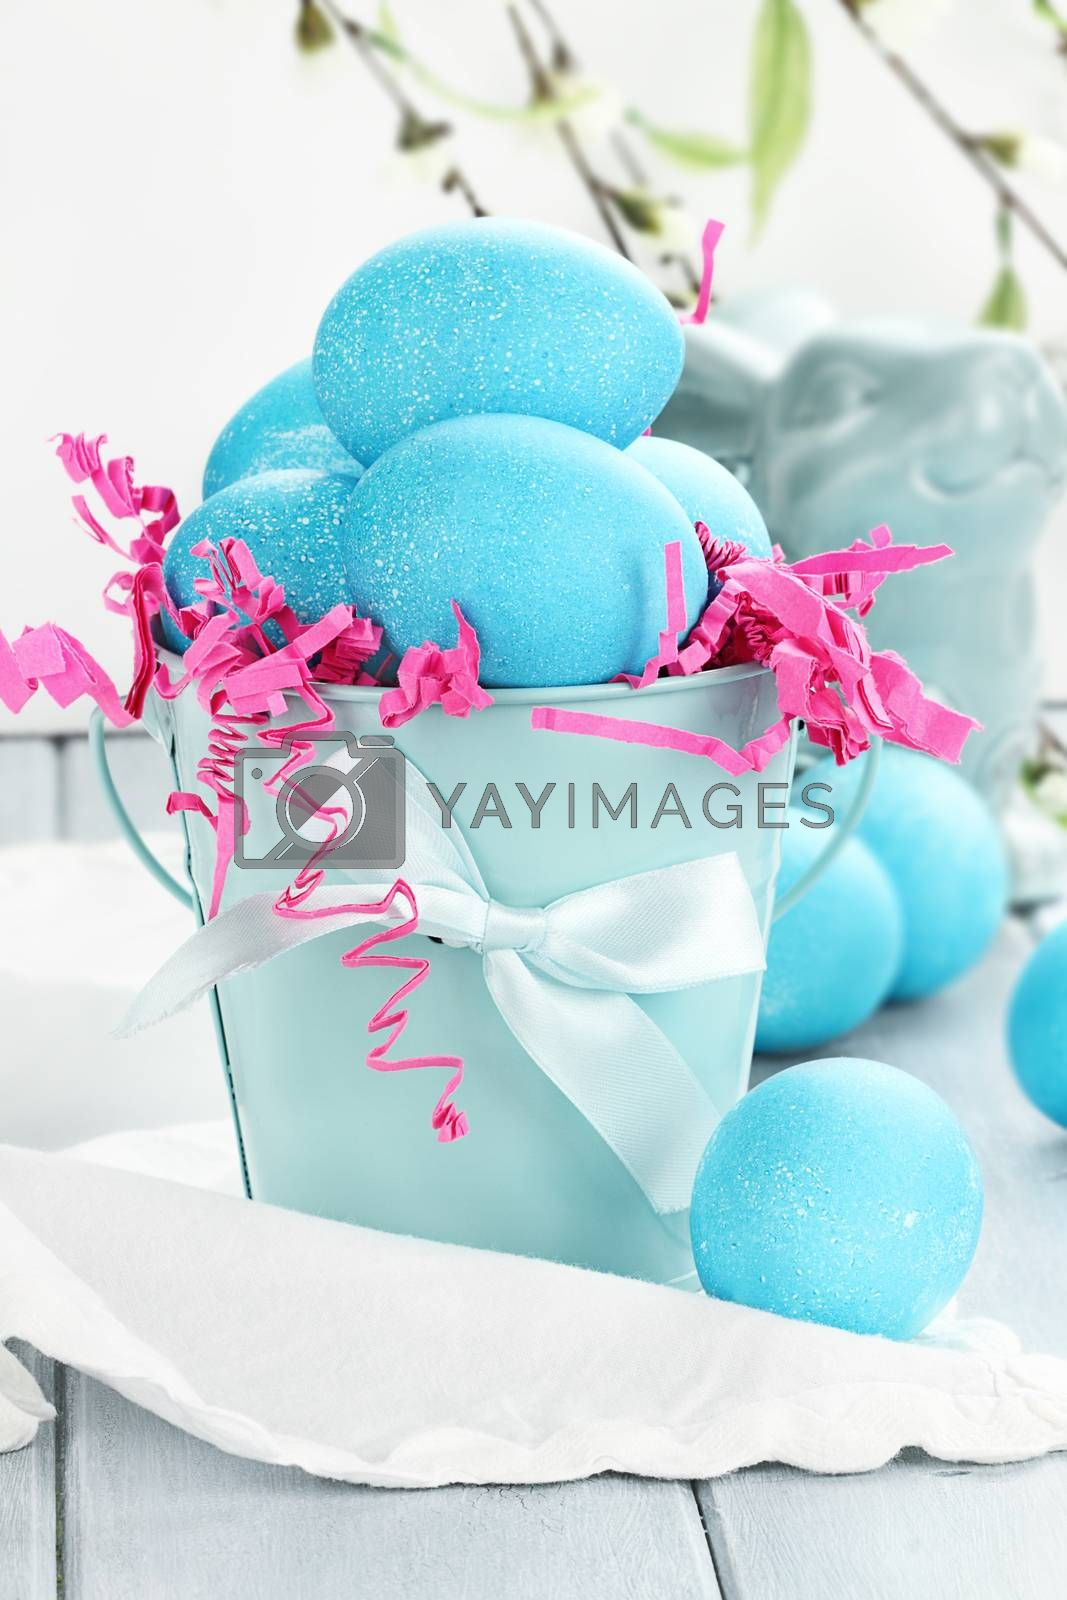 Royalty free image of Blue Easter Eggs by StephanieFrey